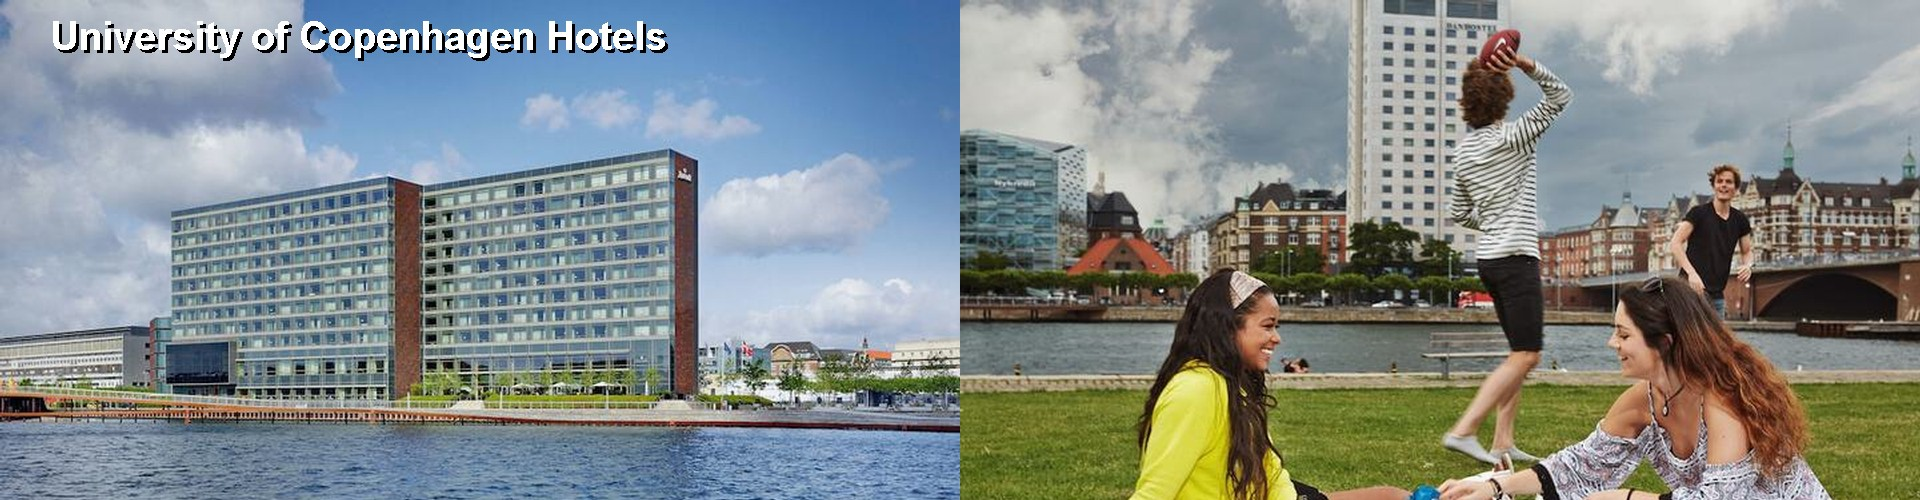 5 Best Hotels near University of Copenhagen